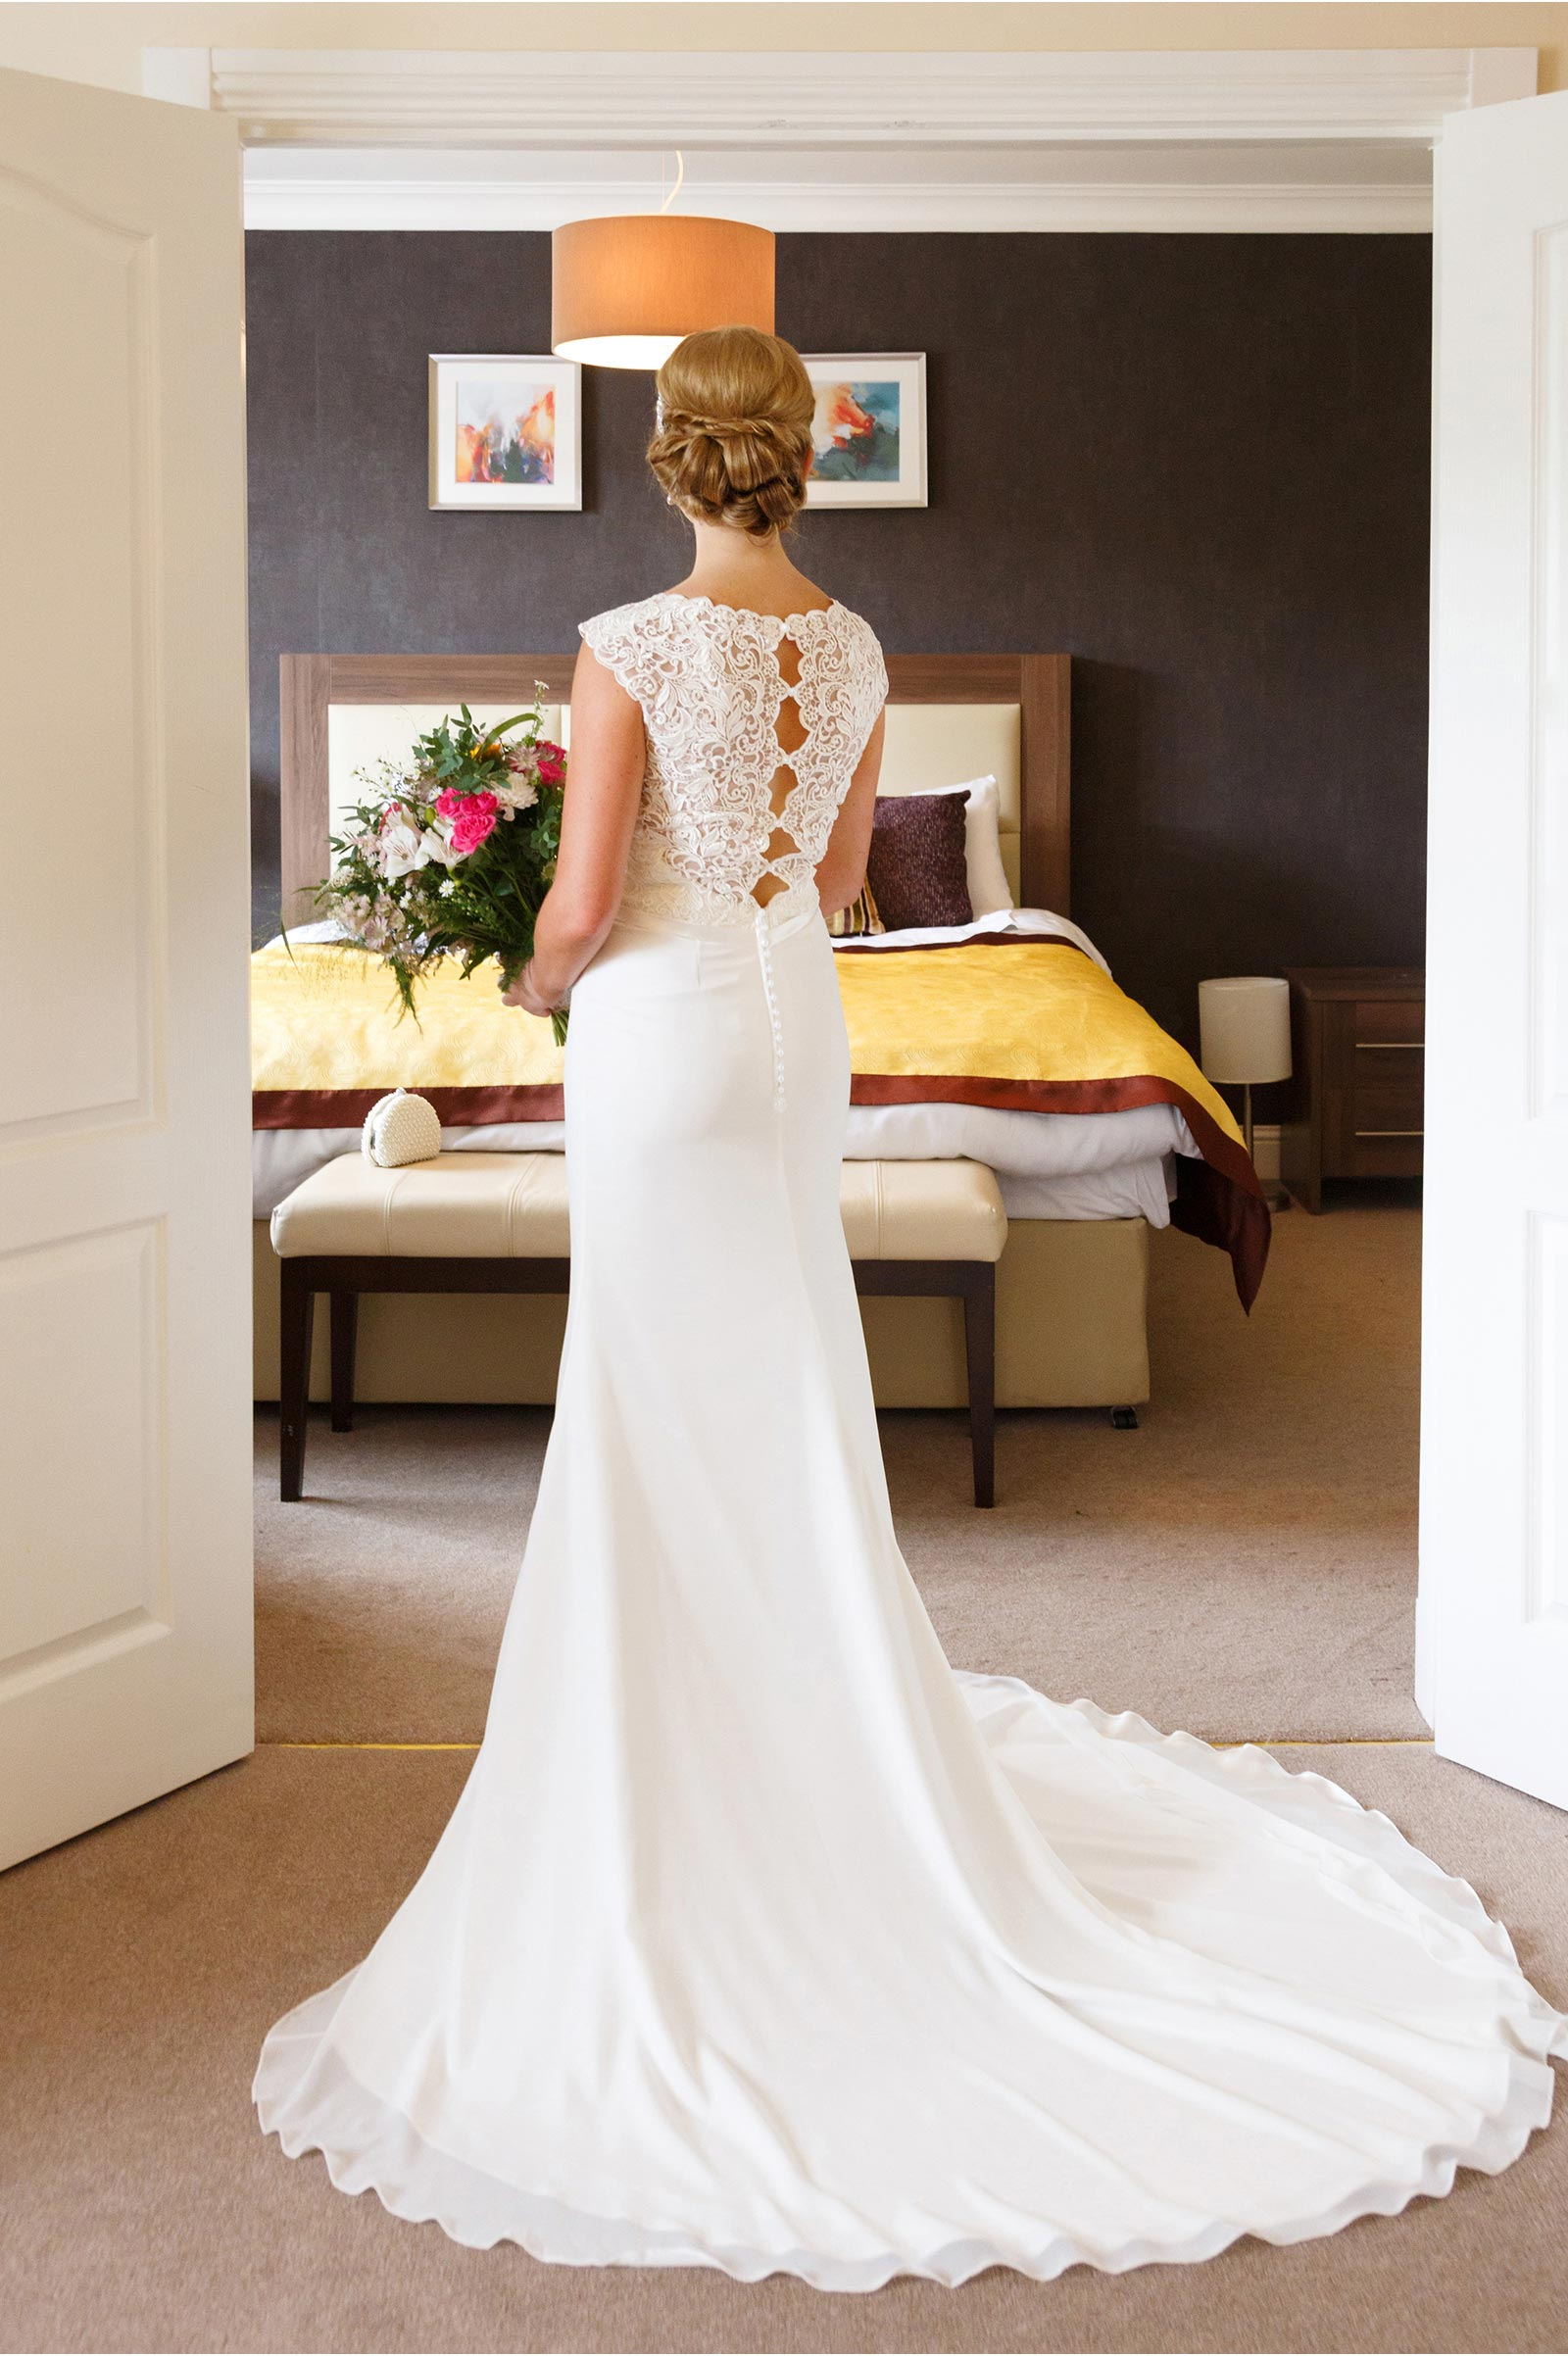 Wedding Delight In Cork Claire ORorke Photography